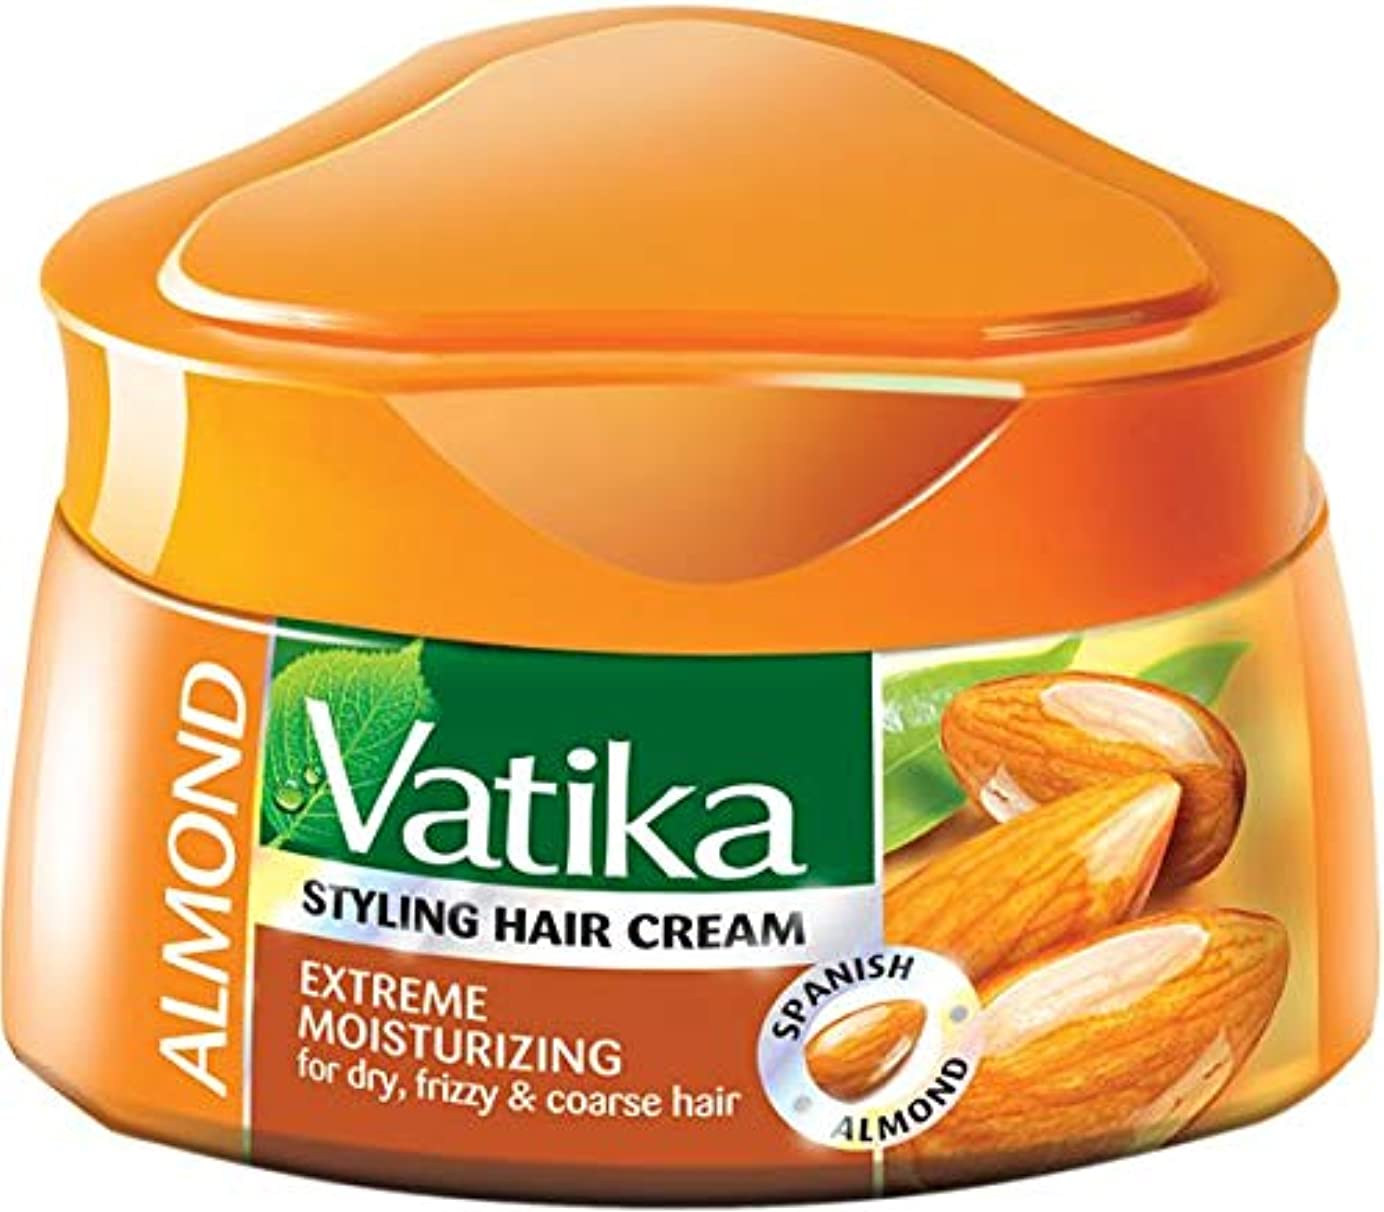 危険にさらされている拍車脊椎Dabur Vatika Natural Styling Hair Cream 140 ml (Extreme Moisturizing (Almond))